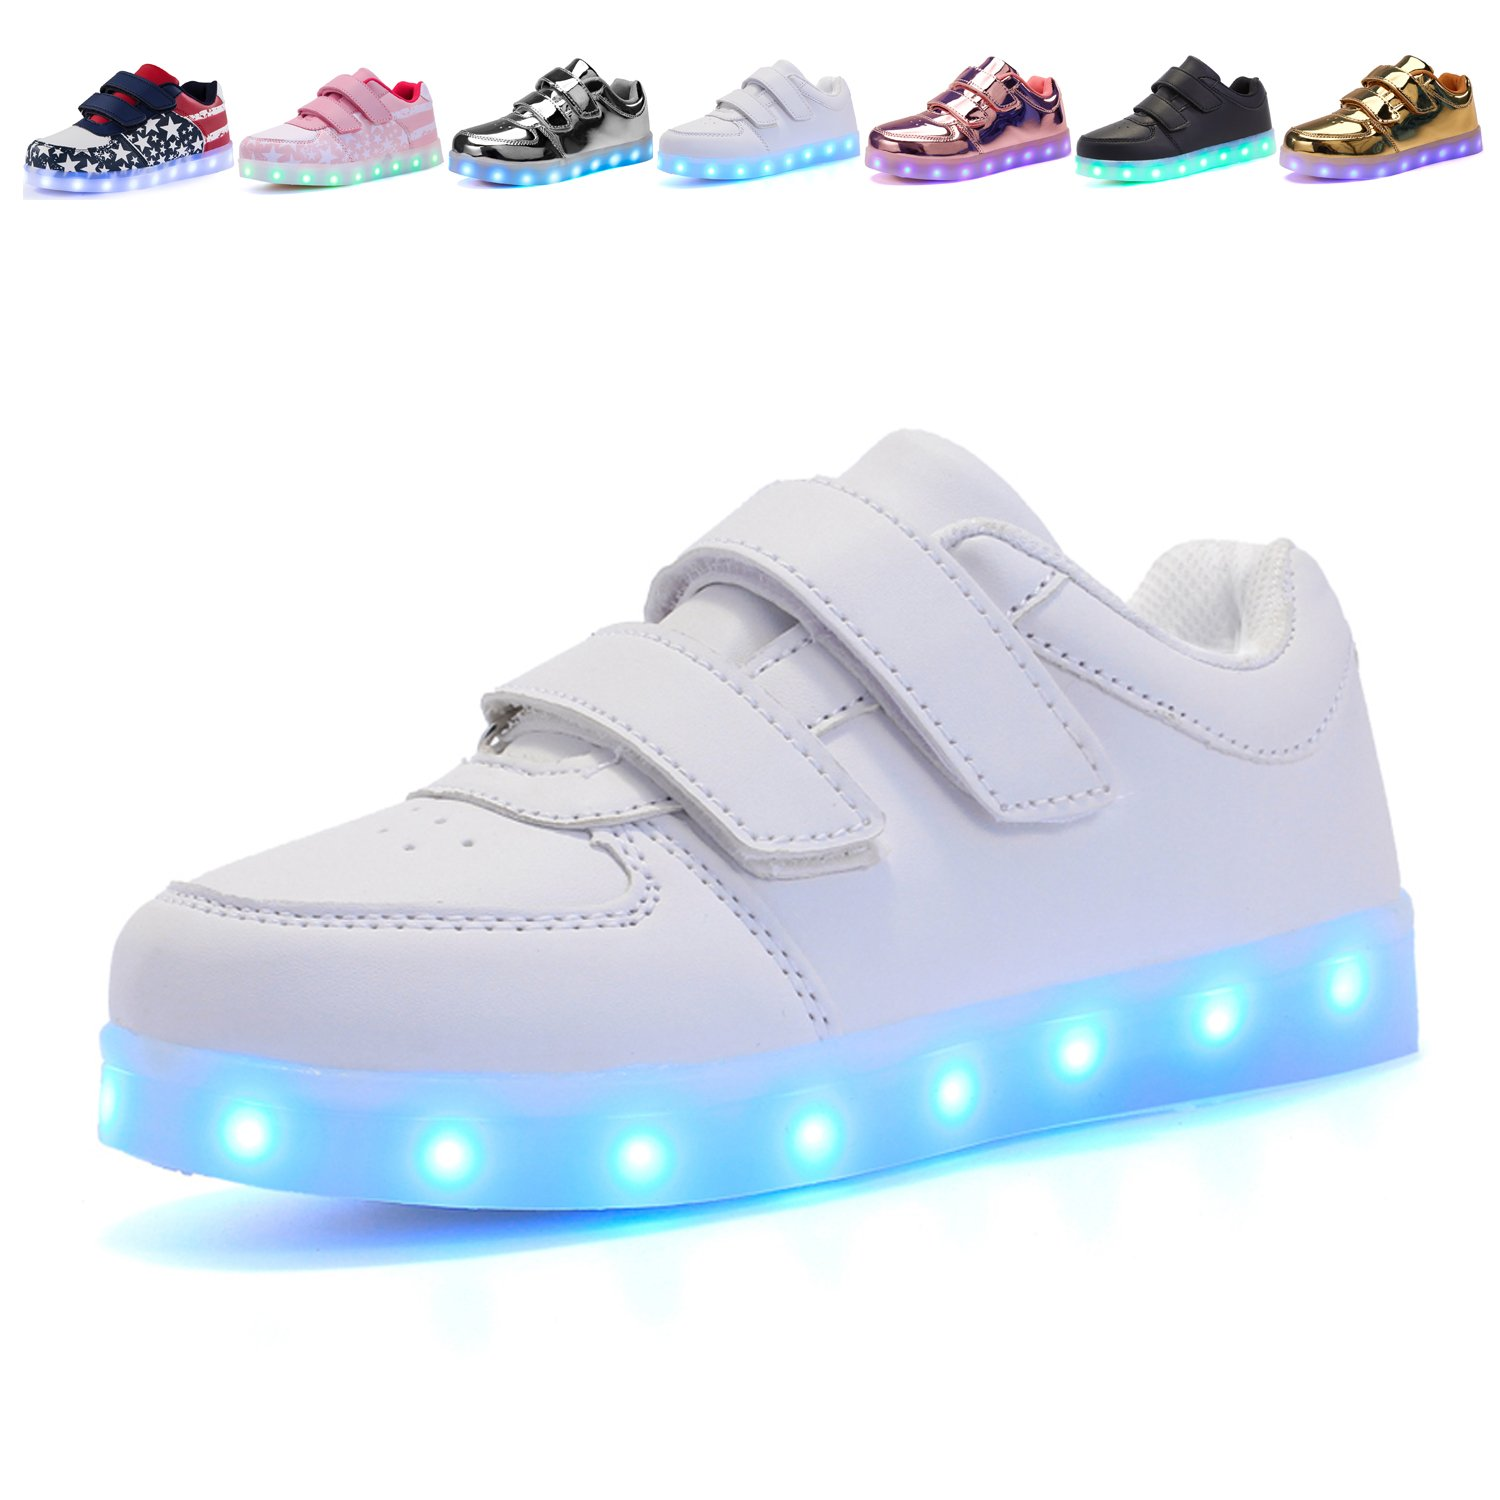 Voovix Kids LED Light up Shoes Lighting Low-Top Sneakers for Boys and Girls(White,US4.5/EU37)